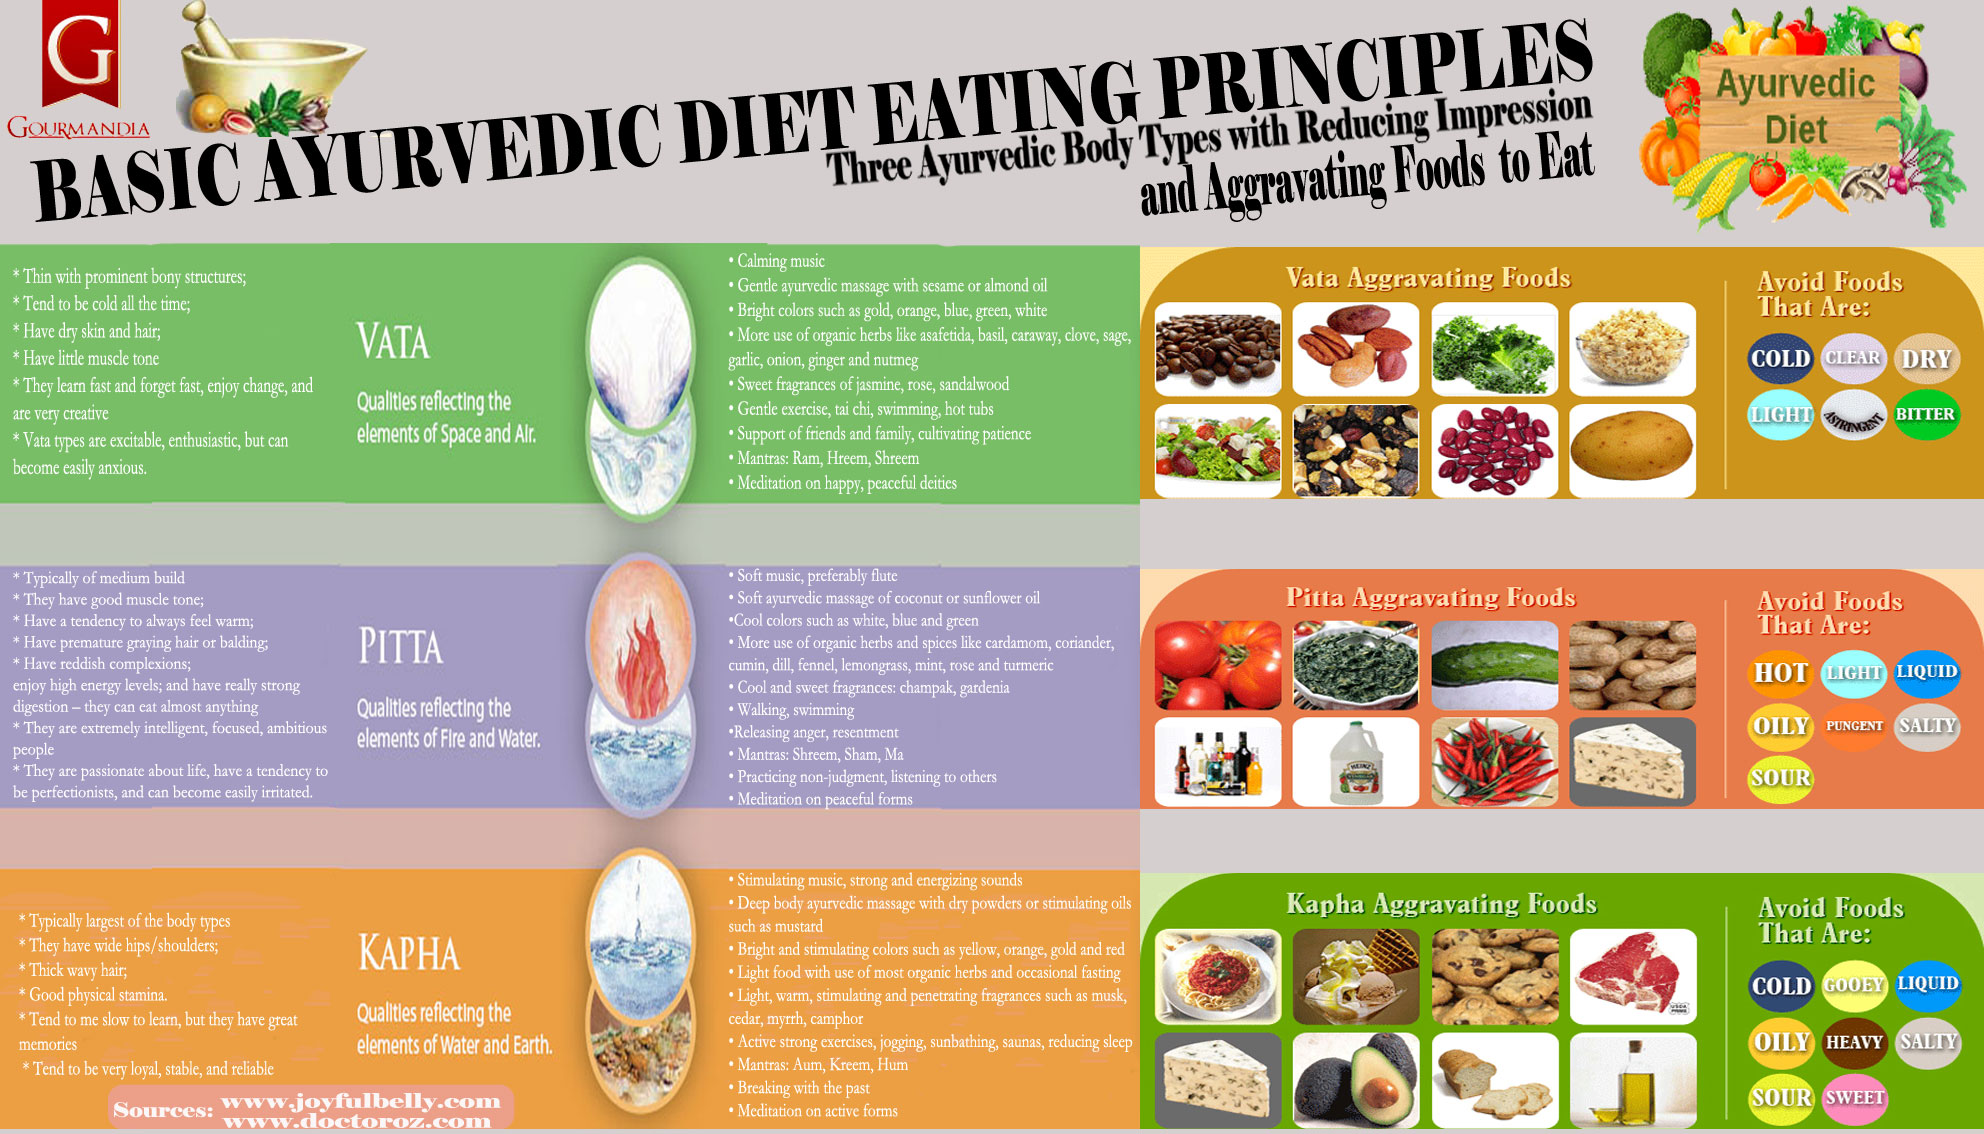 Basic Ayurvedic Eating Principles For Different Body Types ...